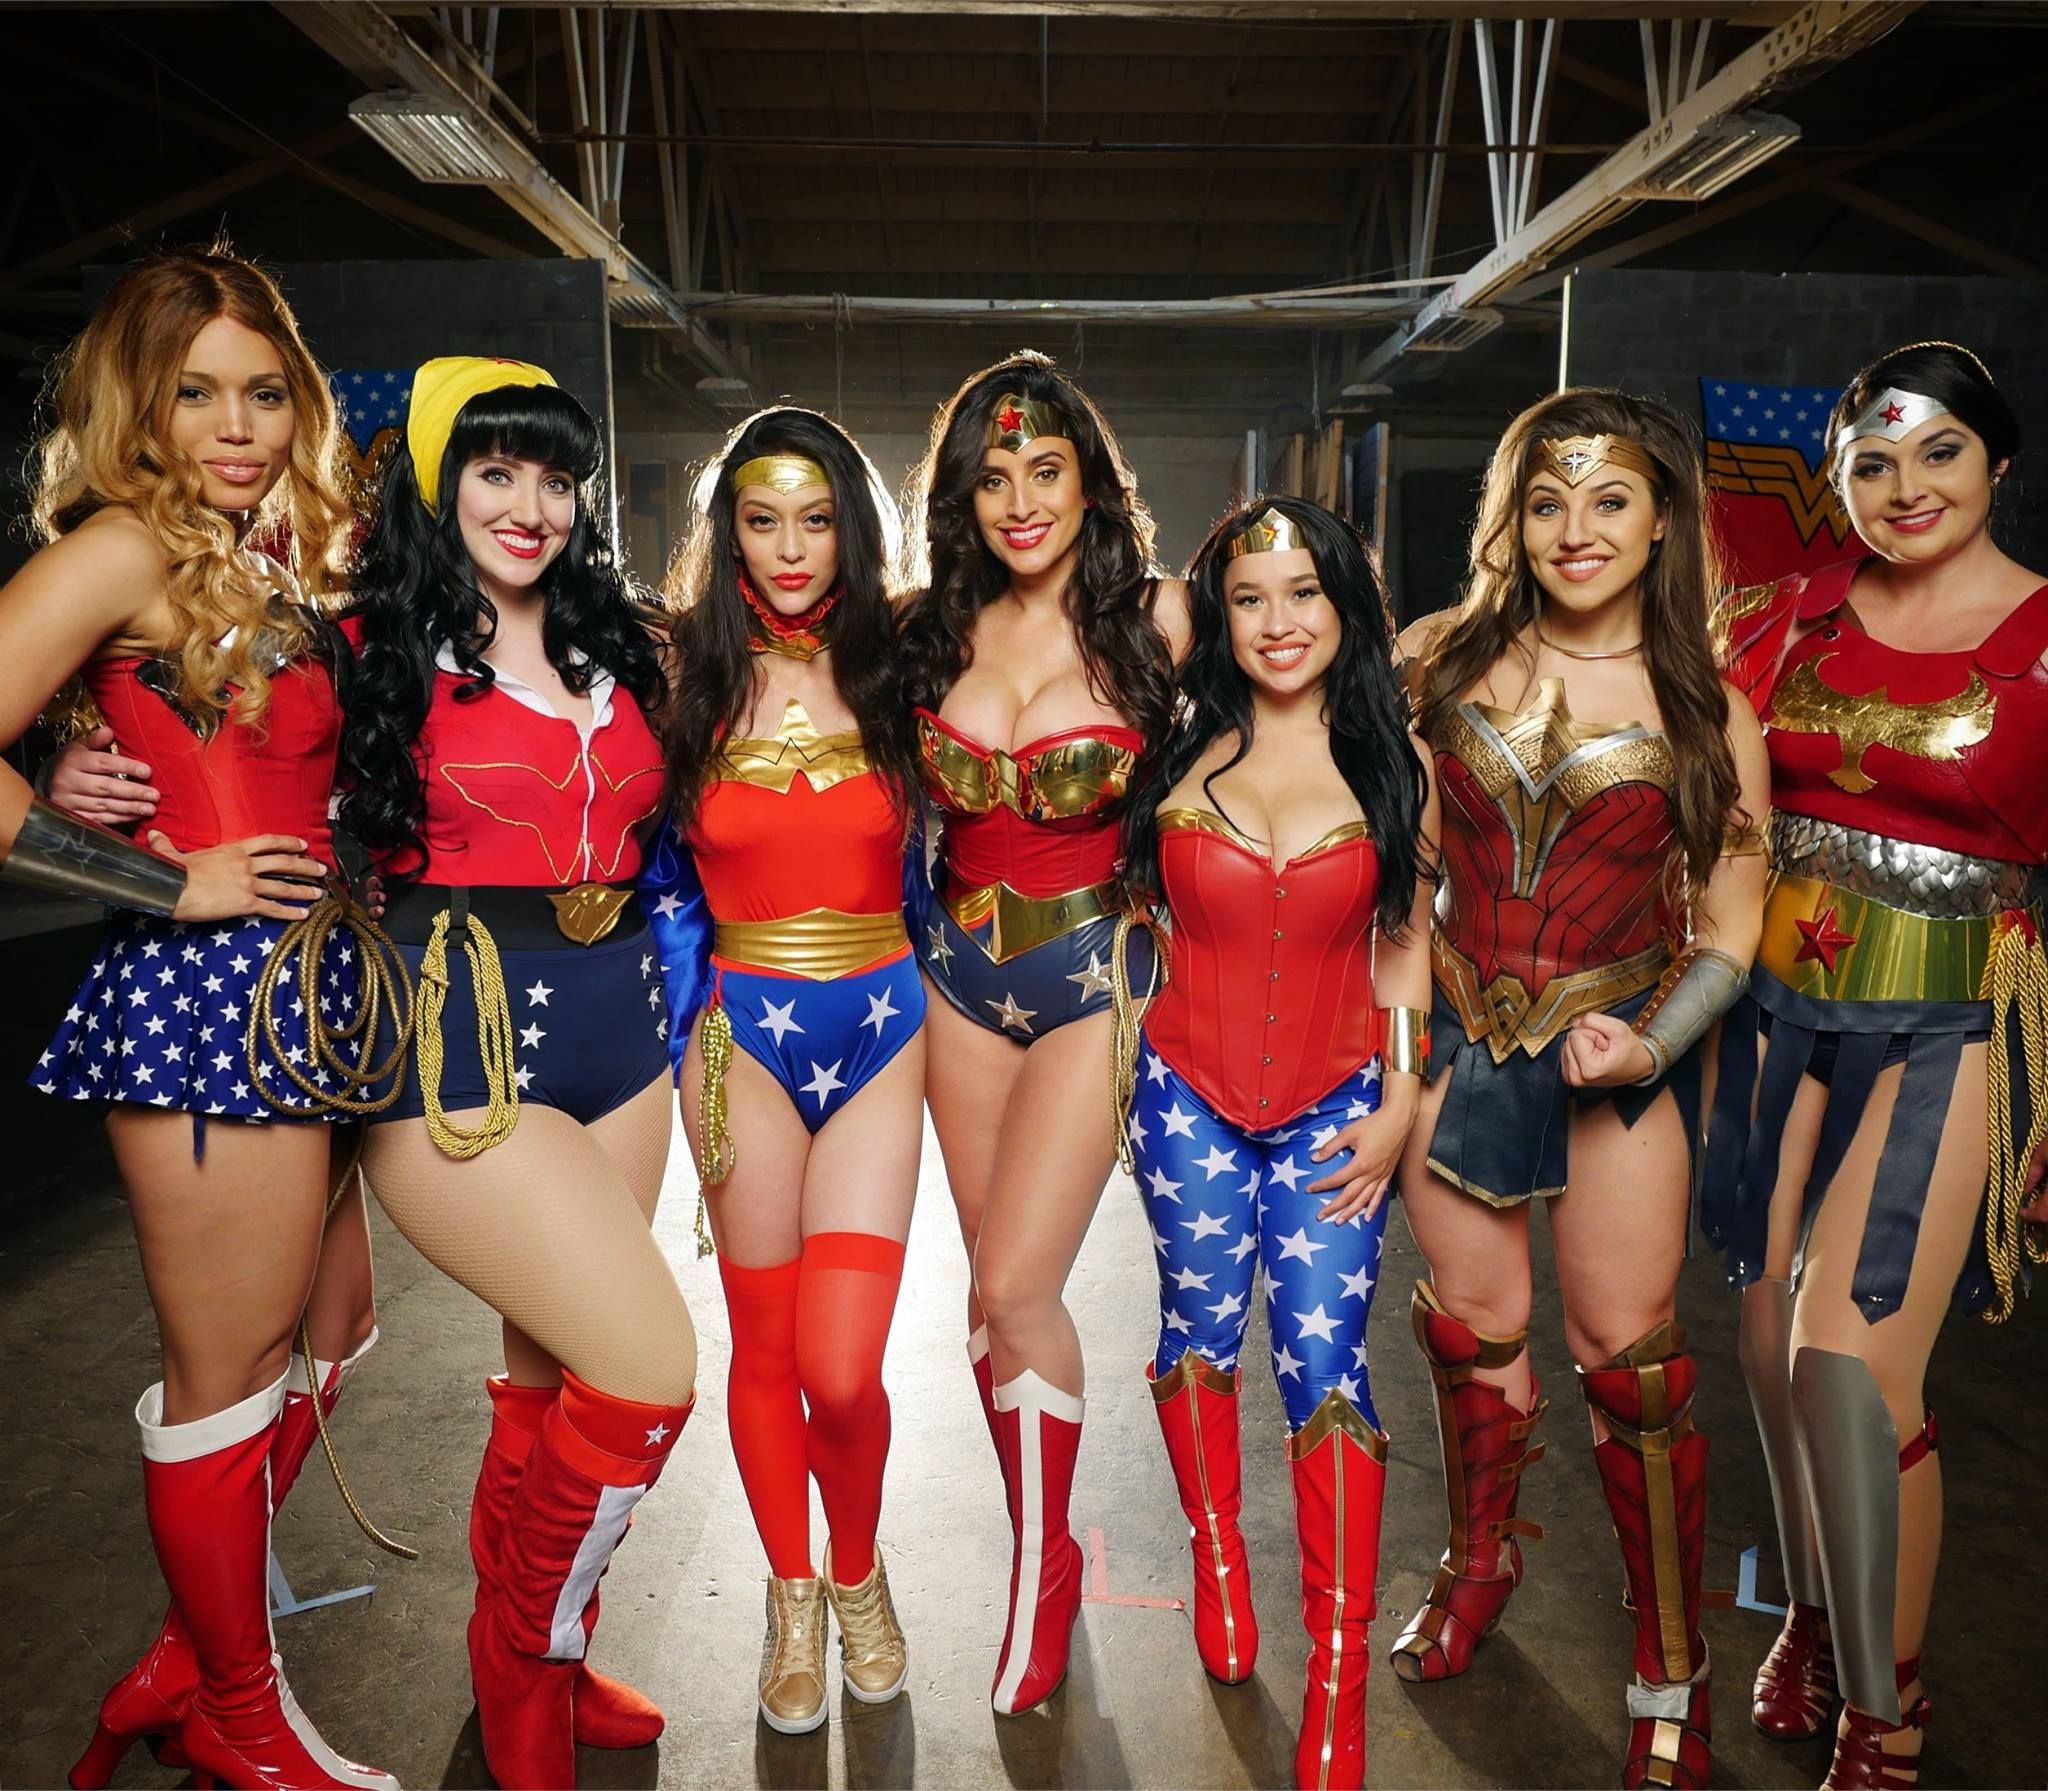 WATCH / #WonderWoman saves the world in new music video mash-up tribute from